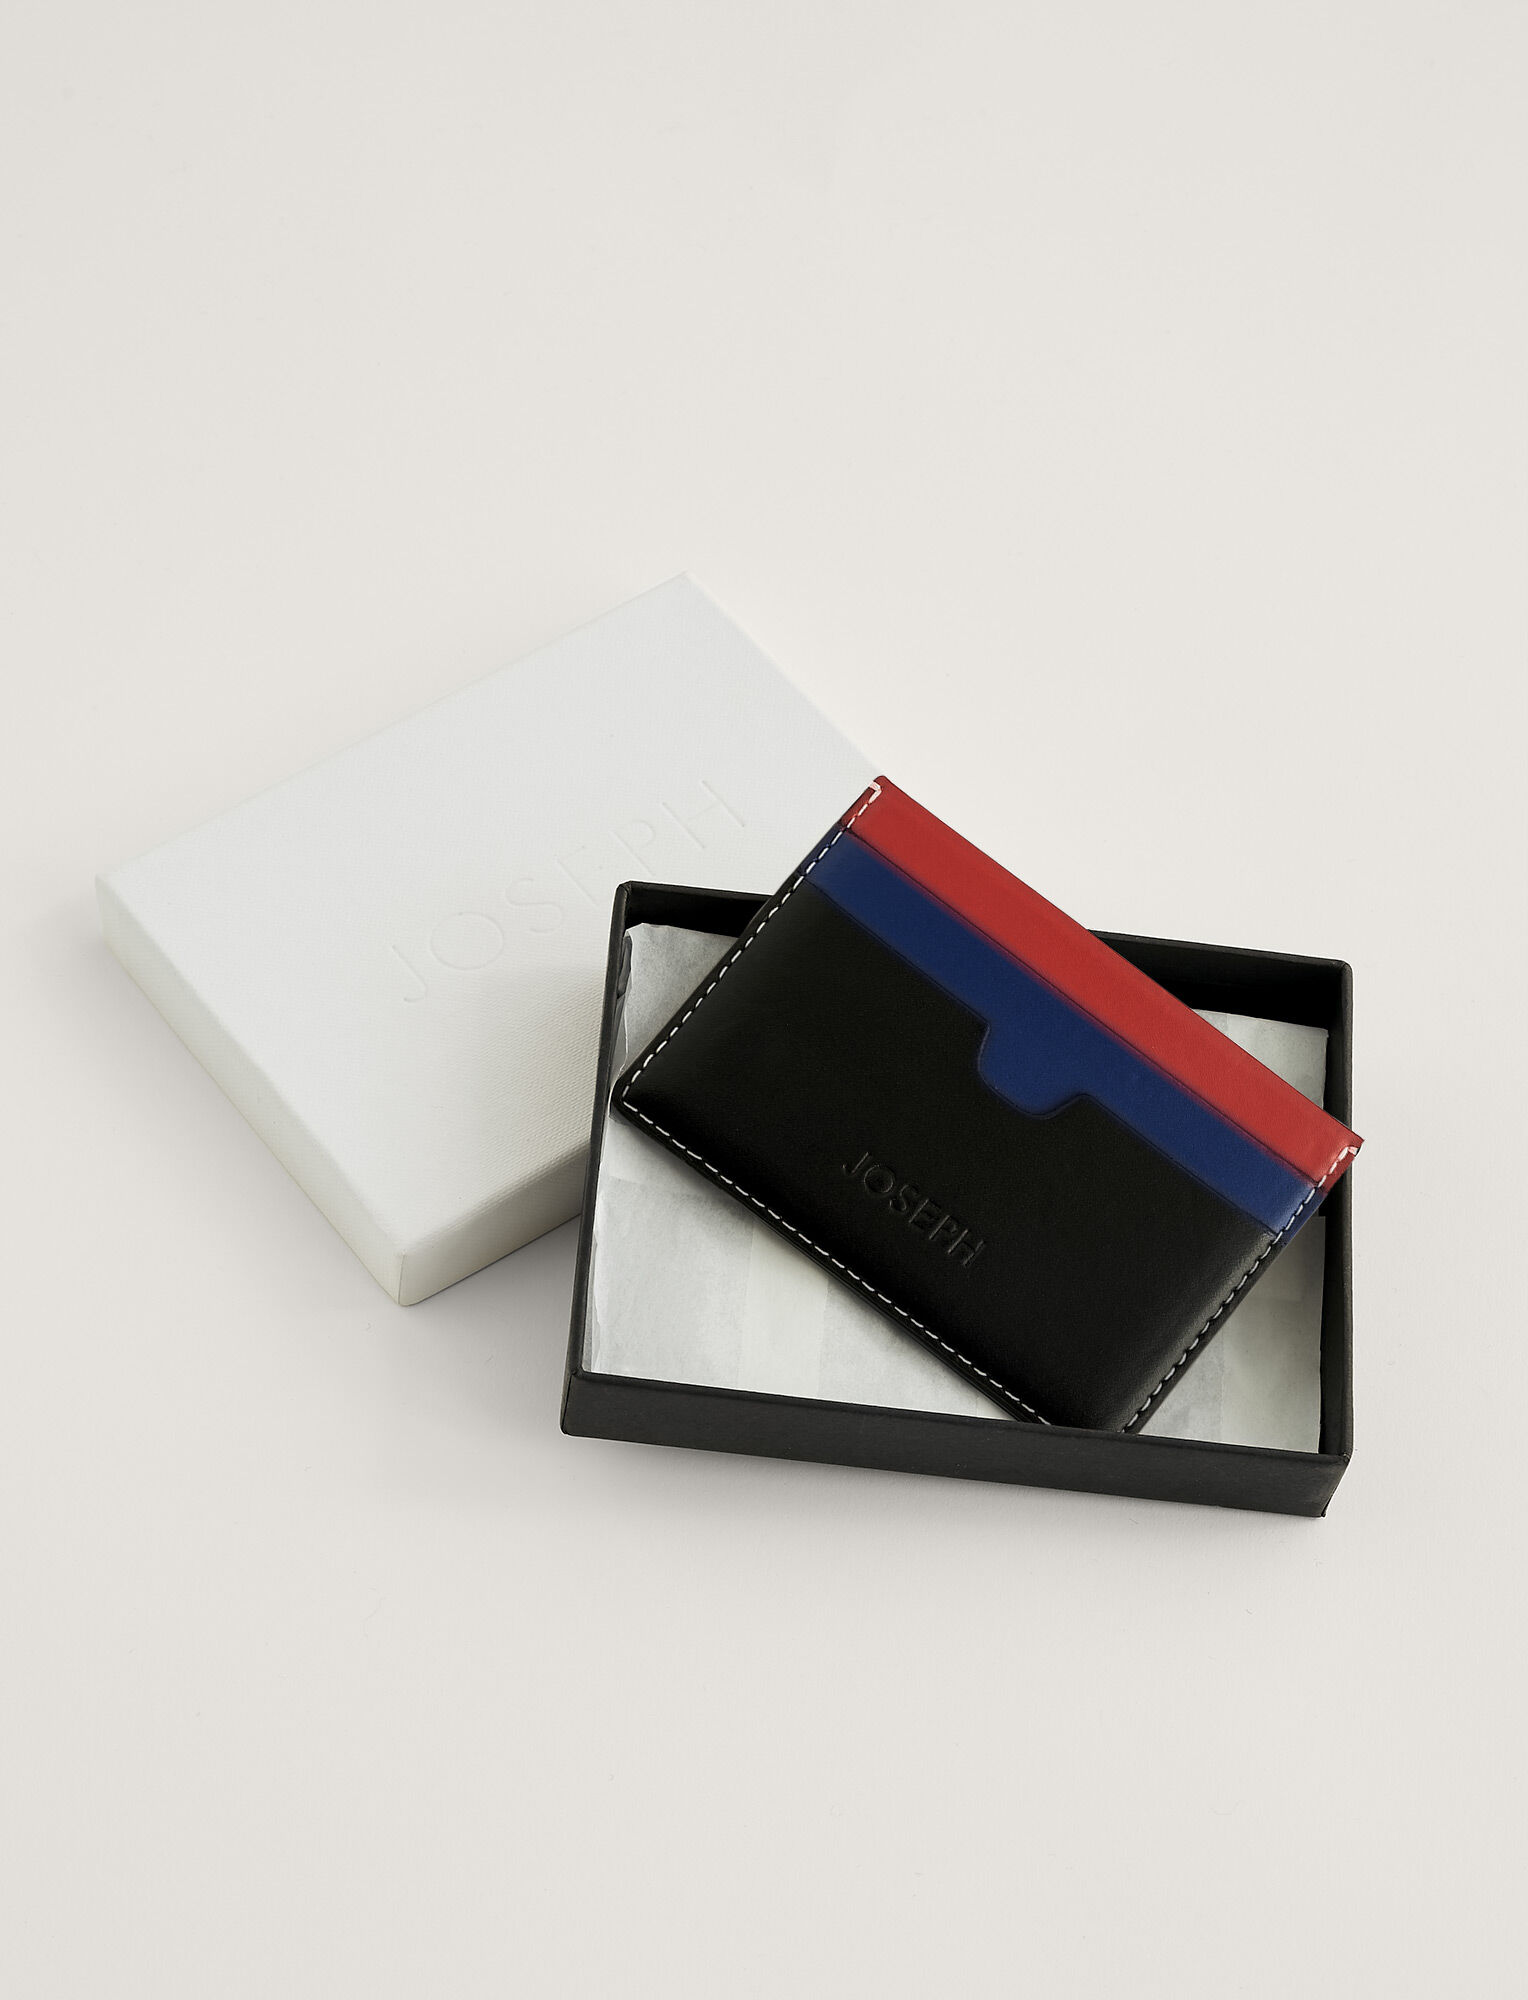 Joseph, Porte-cartes, in MIX 2 TOMATO/COBALT/BLACK